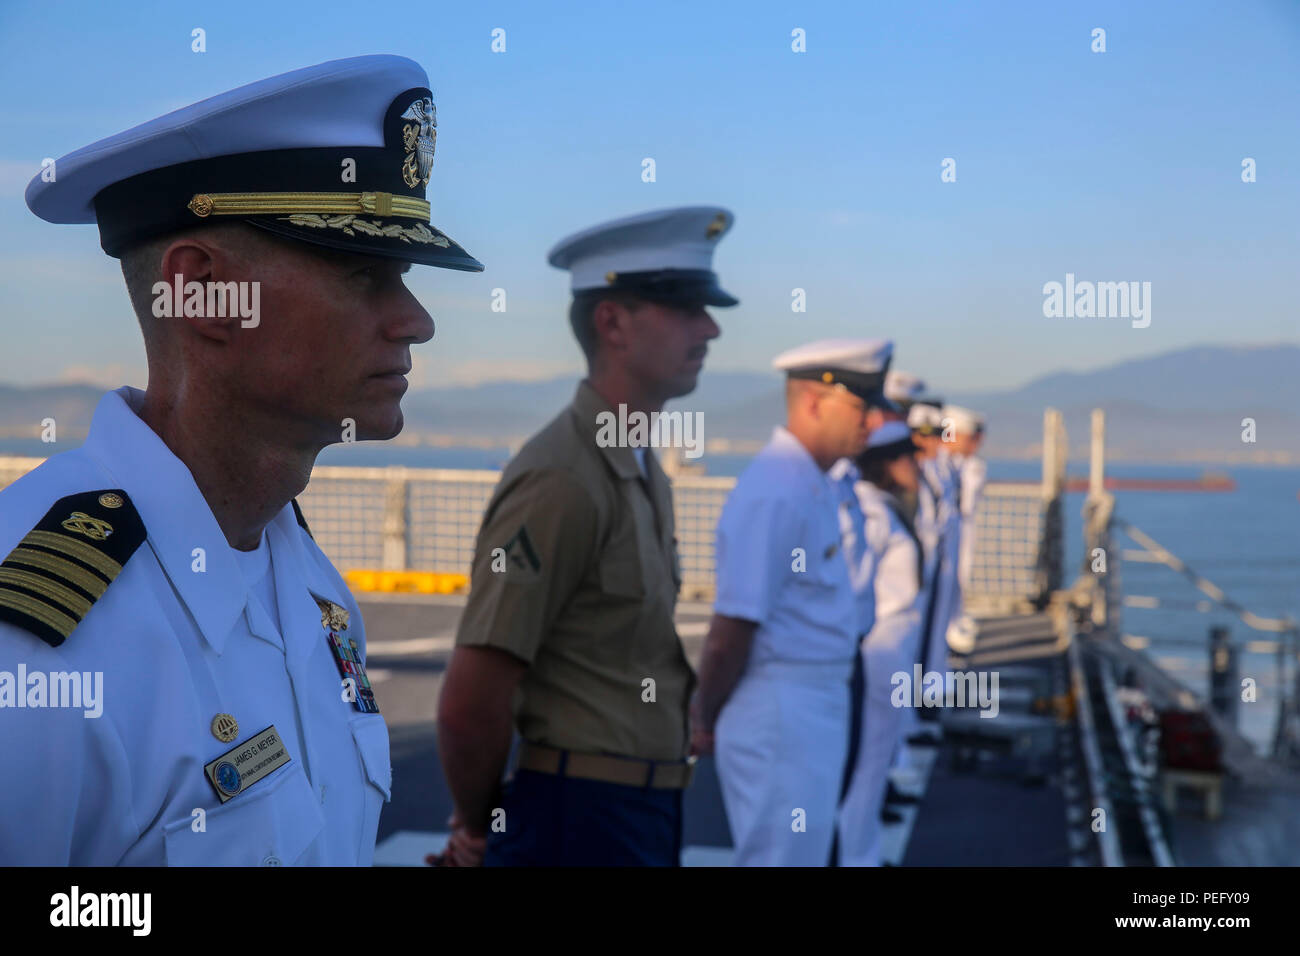 150817-M-GO800-045 DA NANG, Vietnam (August 17, 2015) – Service members with Pacific Partnership 2015 man the rails aboard the Military Sealift Command joint high speed vessel USNS Millinocket (JHSV 3)  Aug. 17 as the ship arrives in Vietnam. Task Force Forager, embarked aboard Millinocket is serving as the secondary platform for Pacific Partnership, led by an expeditionary command element from the Navy's 30th Naval Construction Regiment (30 NCR) from Port Hueneme, California. Now in its 10th iteration, Pacific Partnership is the largest annual multilateral humanitarian assistance and disaster - Stock Image